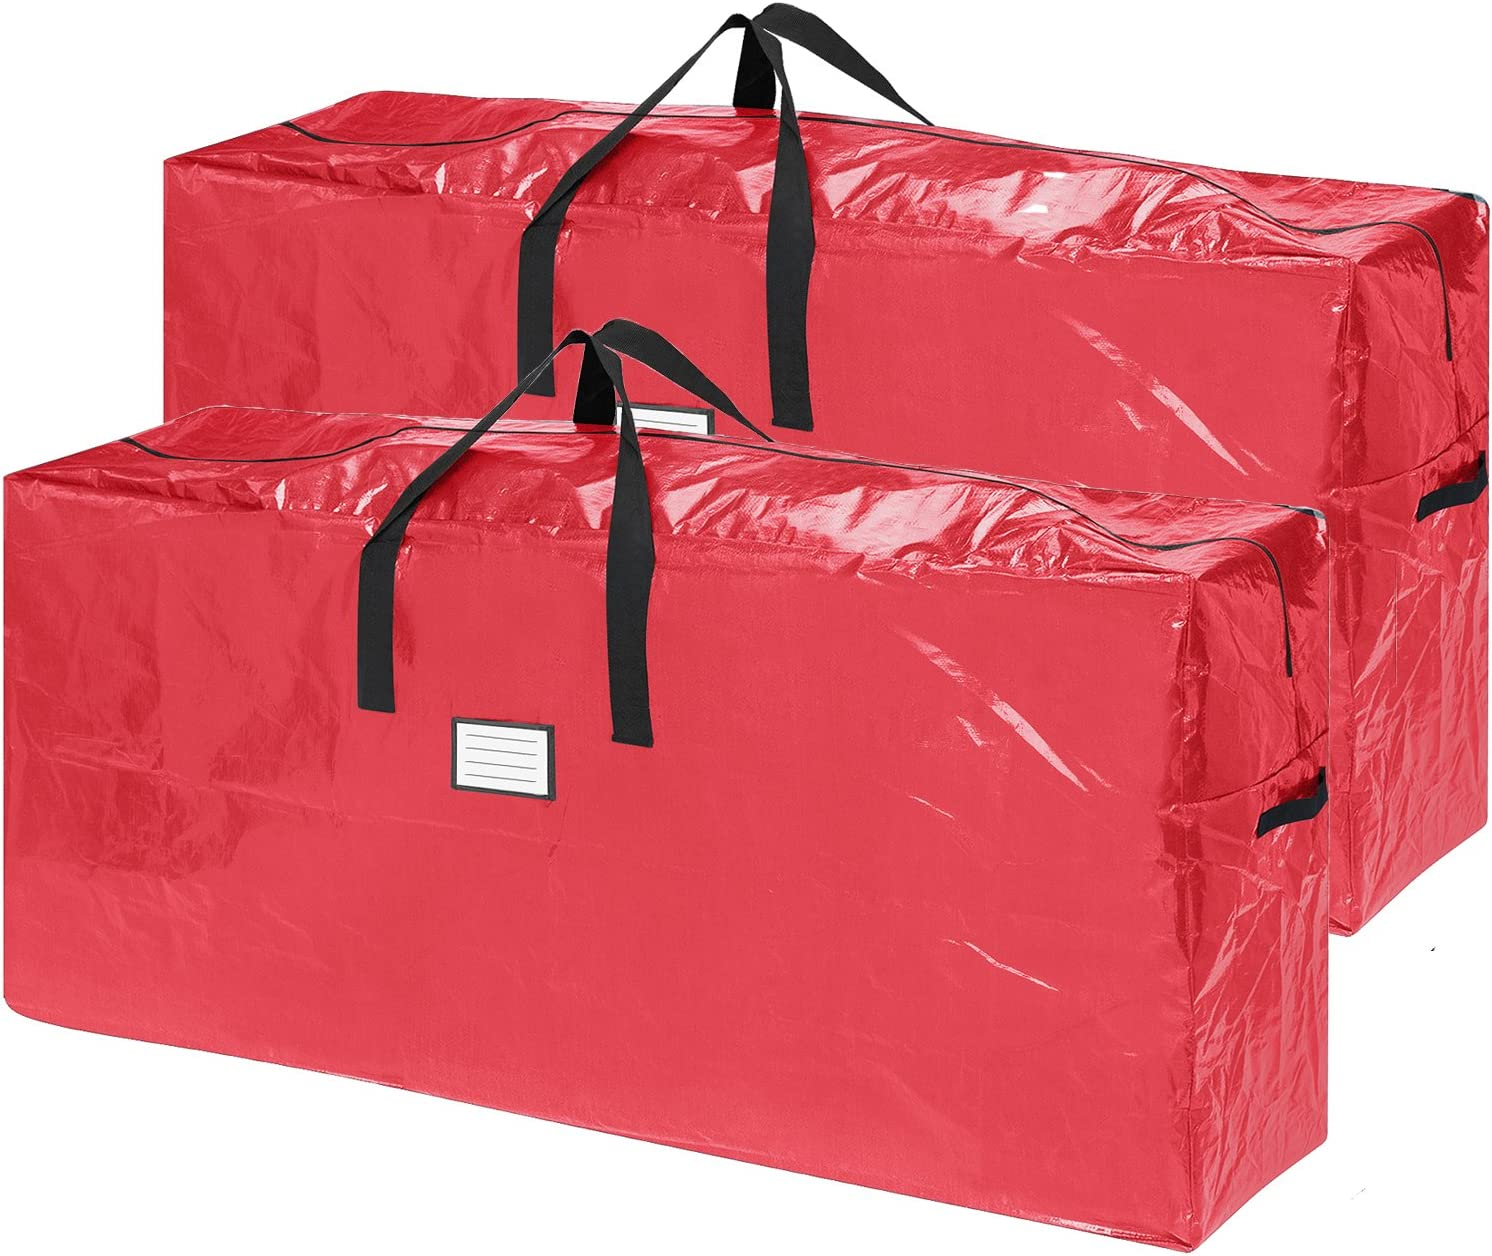 Elf Stor 83-DT5517 2-Pack Extra Large for up to 9 Ft Tree Christmas Bag Red